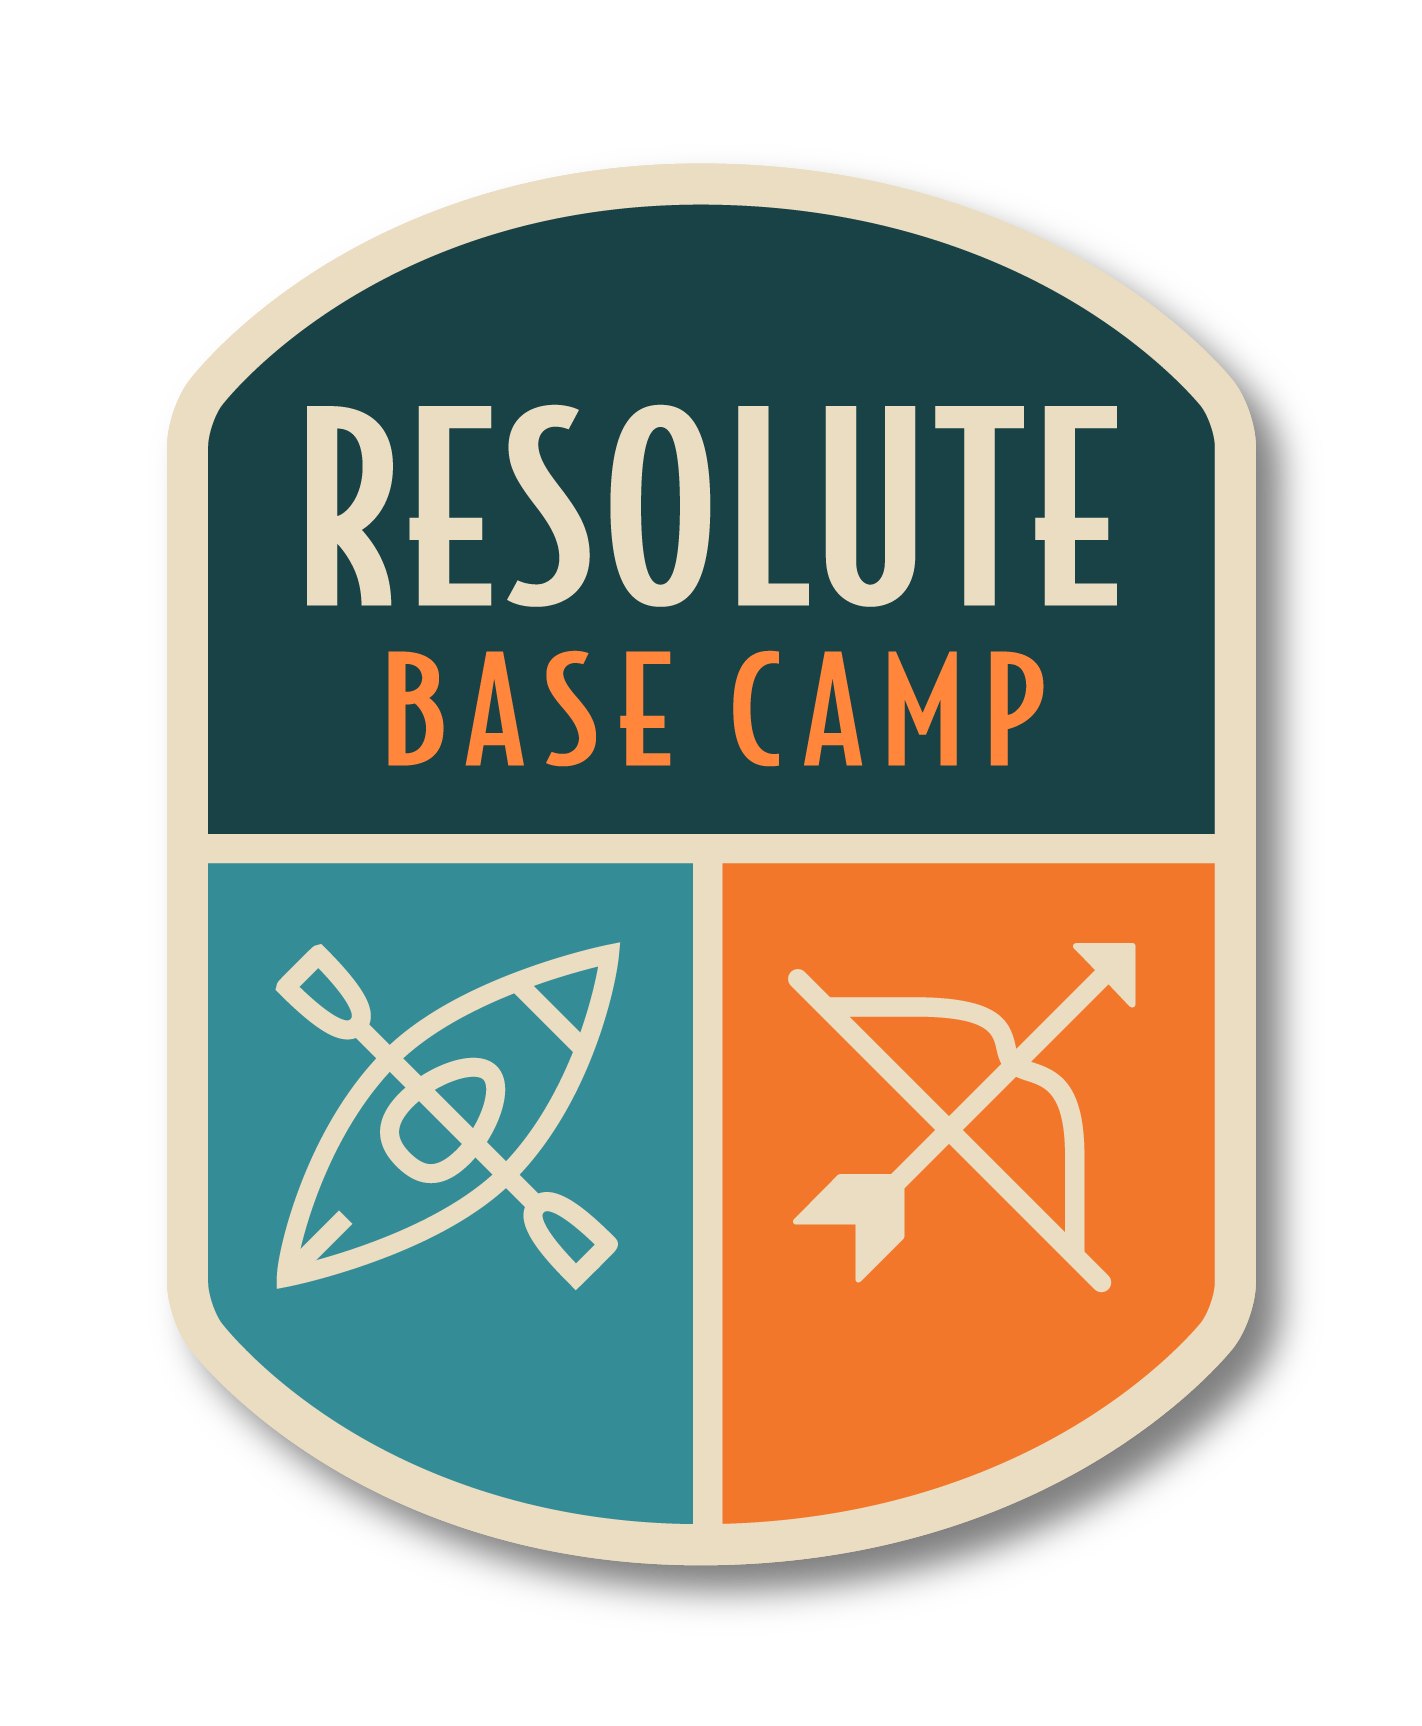 Resolute Base Camp